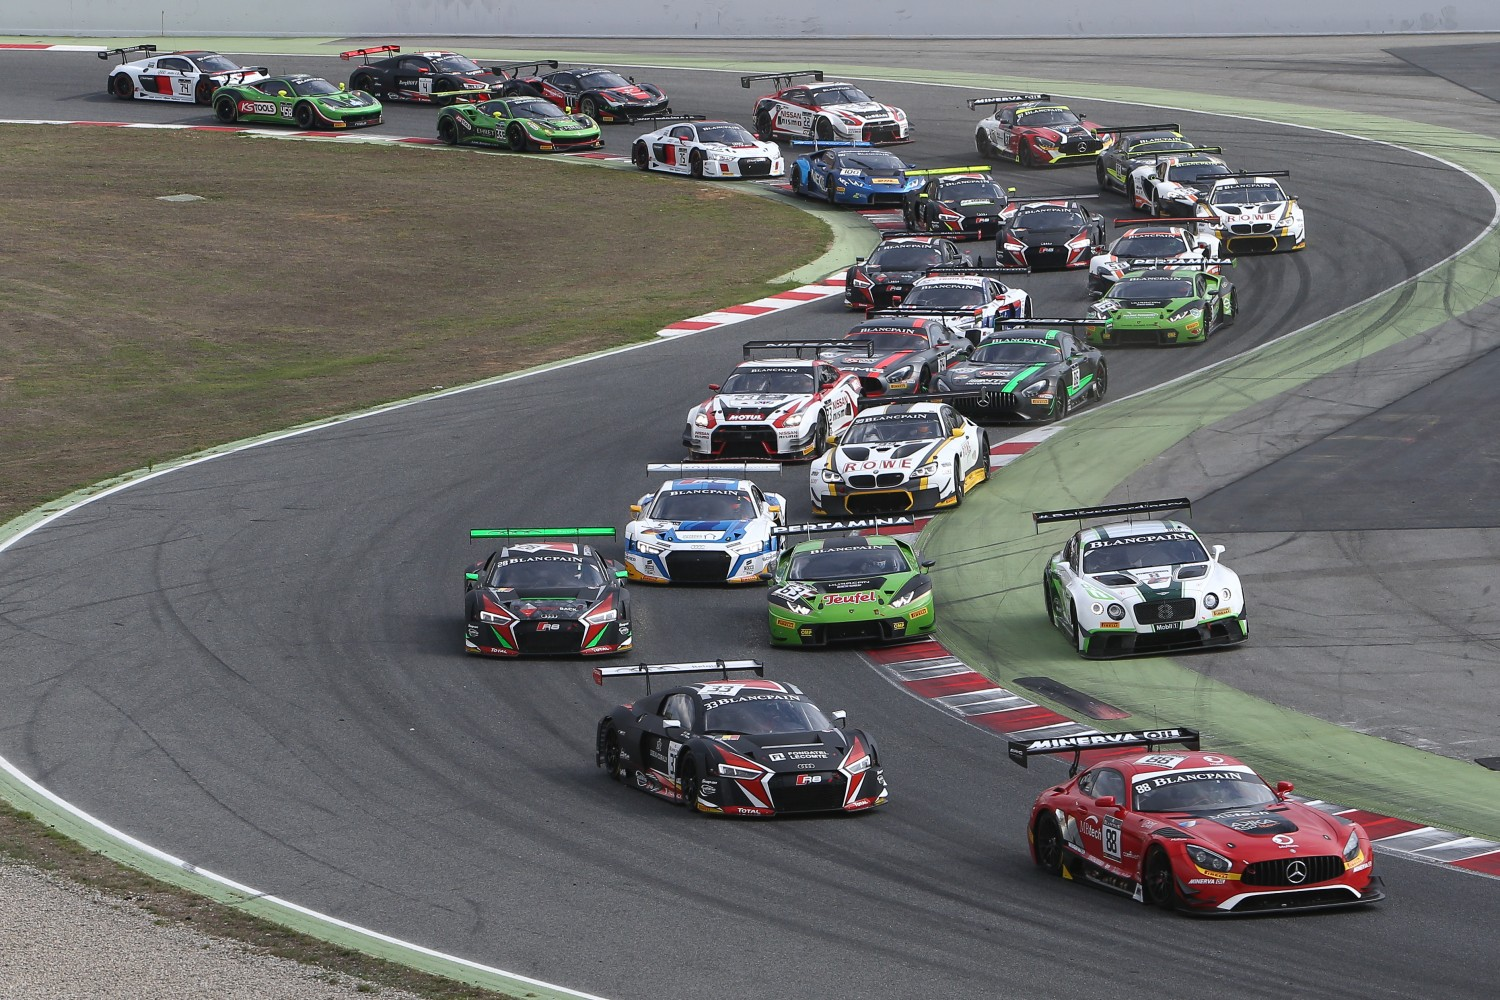 2016 Blancpain GT Series season finale turns out to be a thriller